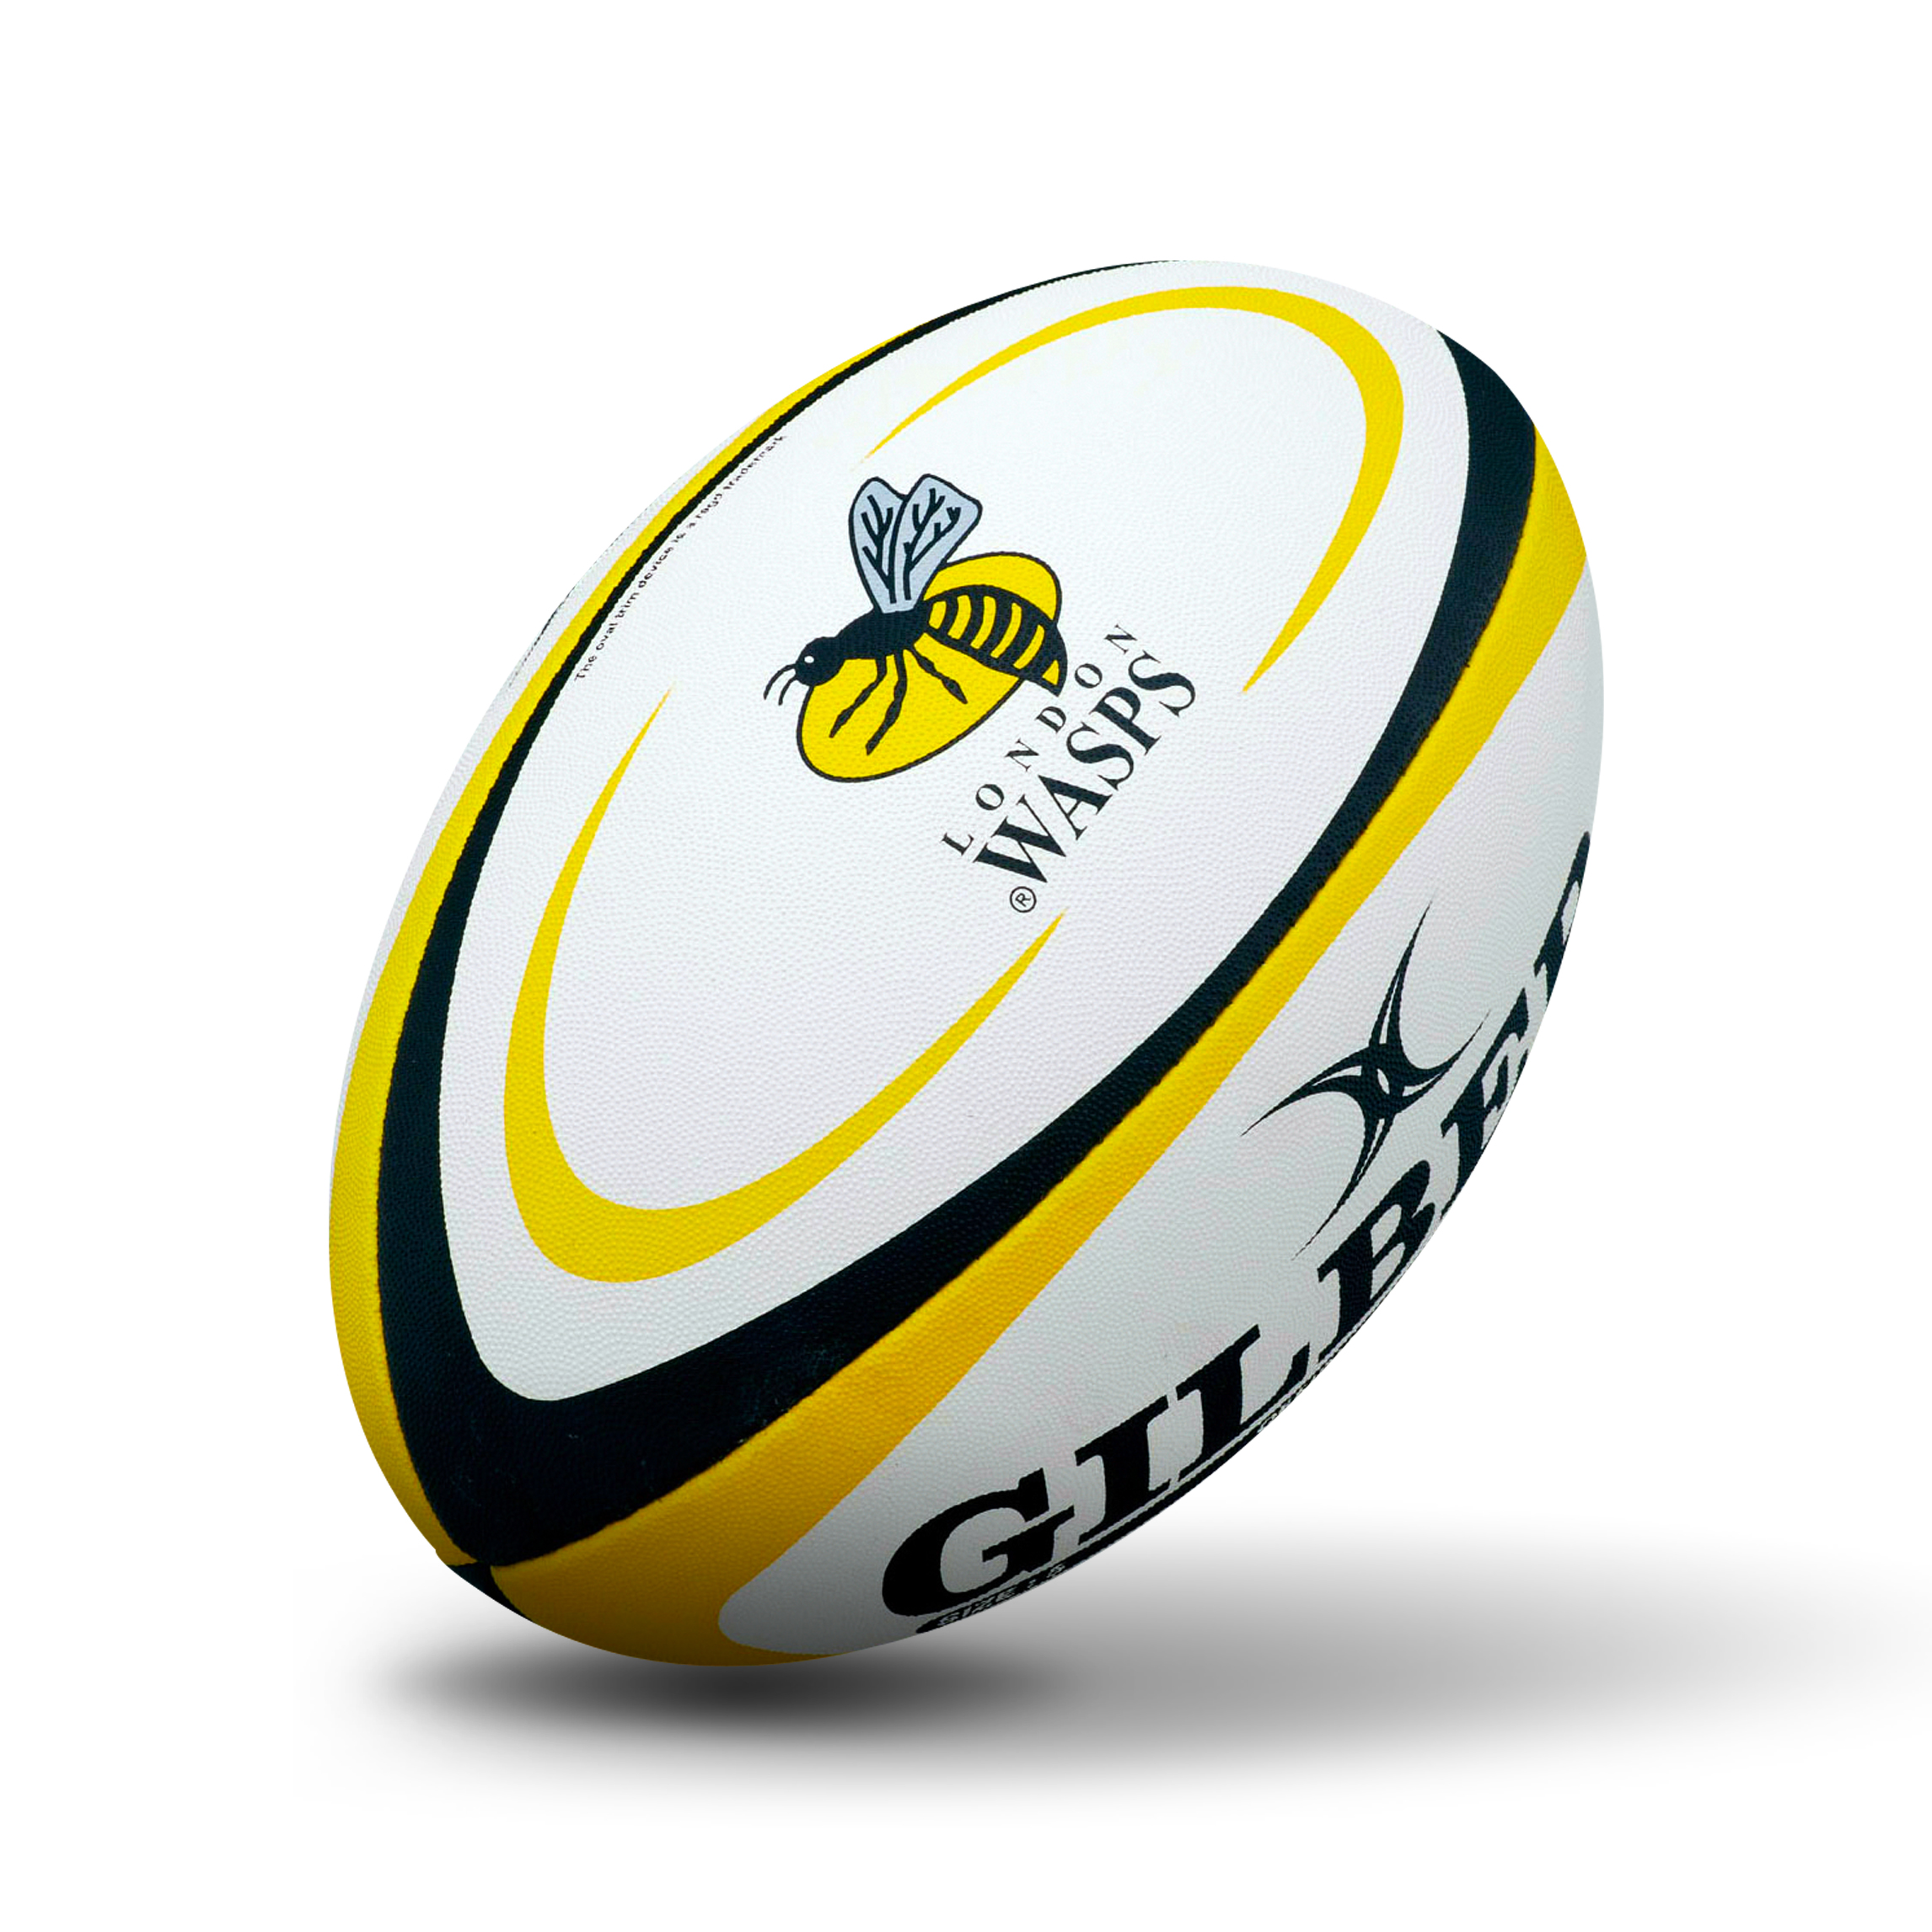 Gilbert London Wasps Rugby Ball - Yellow/Black - Size 5